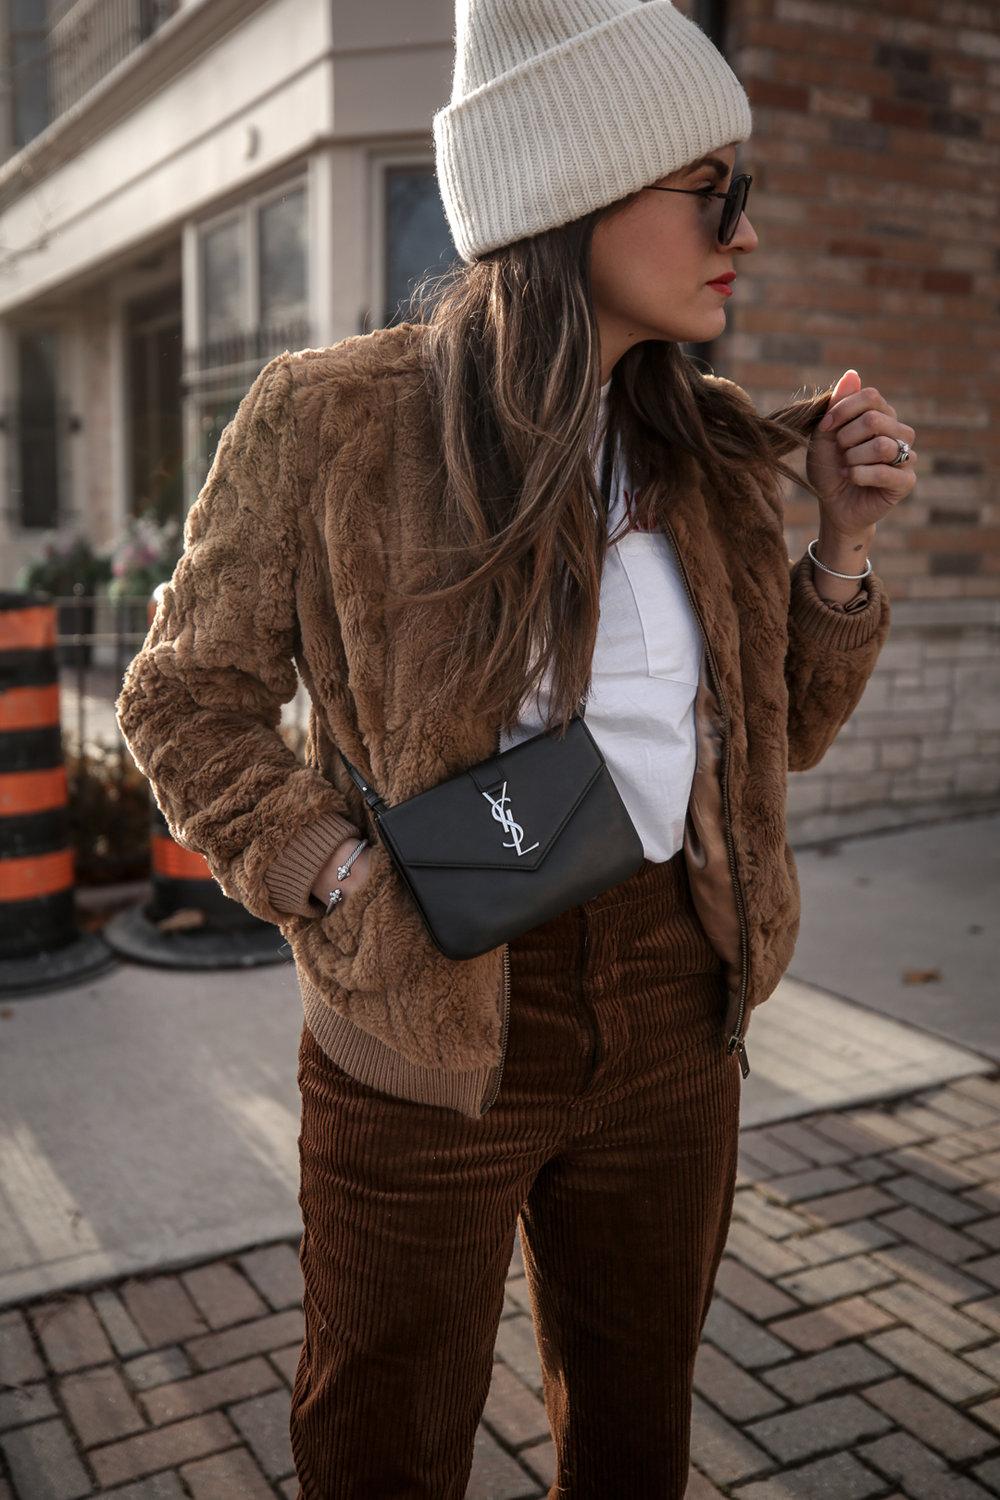 Nathalie Martin wearing brown teddy bear bomber jacket, corduroy pants, Sandro LOVE t-shirt, white sneakers, Saint Laurent Paris black bag, ivory Acne Studios Pansy face beanie, street style, Luka Sabbat inspired, woahstyle.com_4970.jpg